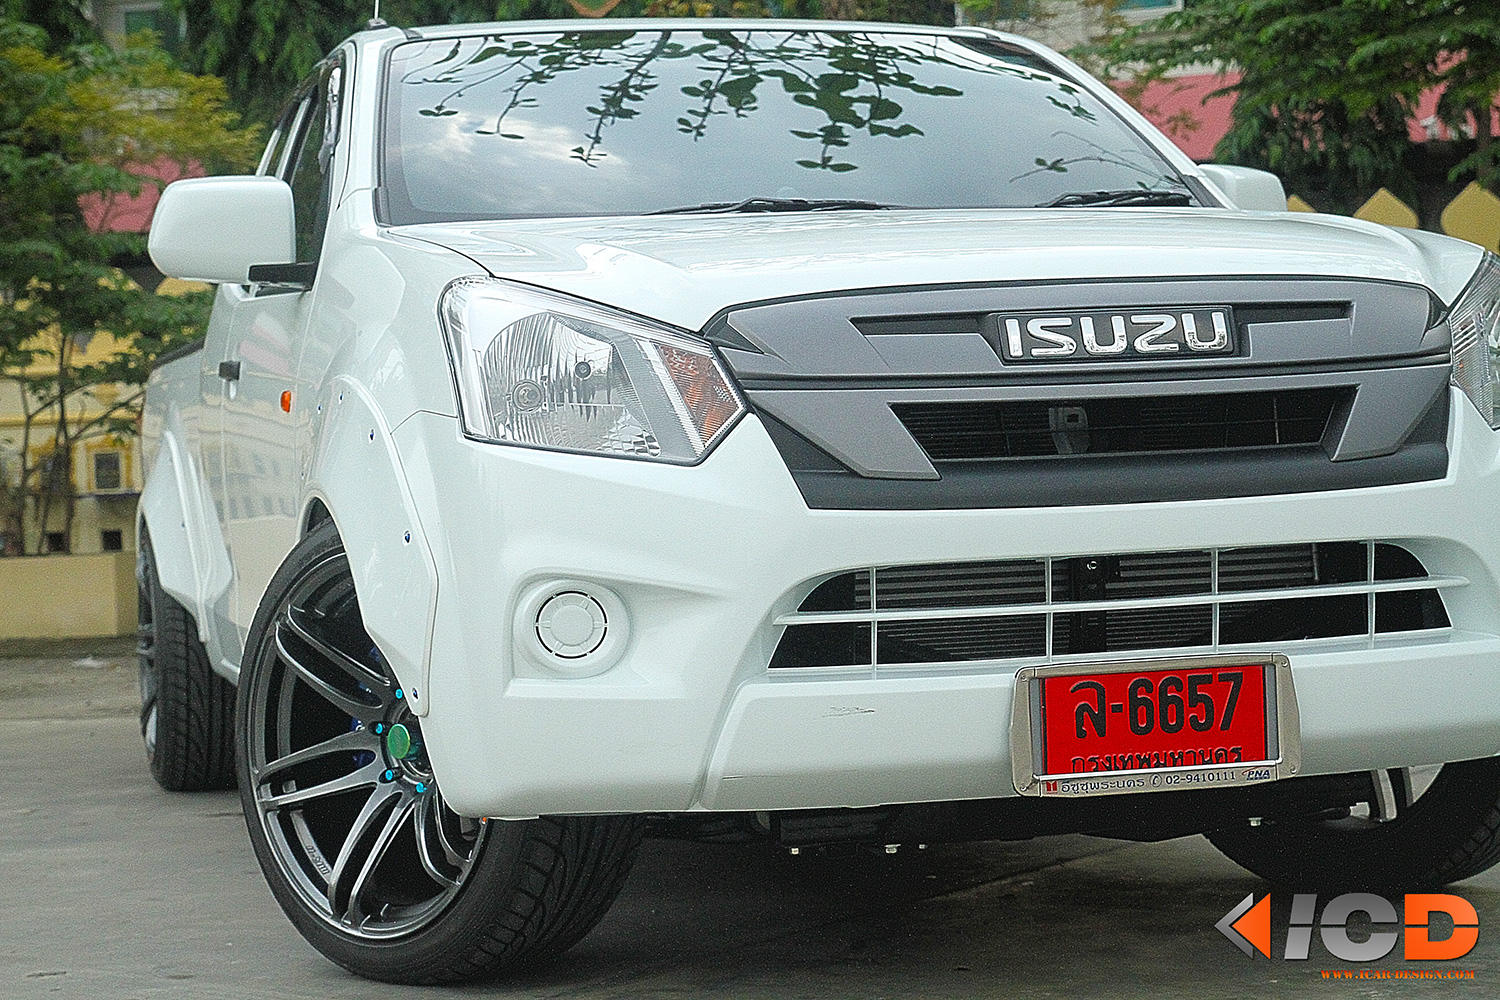 ISUZU All New D-Max Fender Flare Racing Style-1